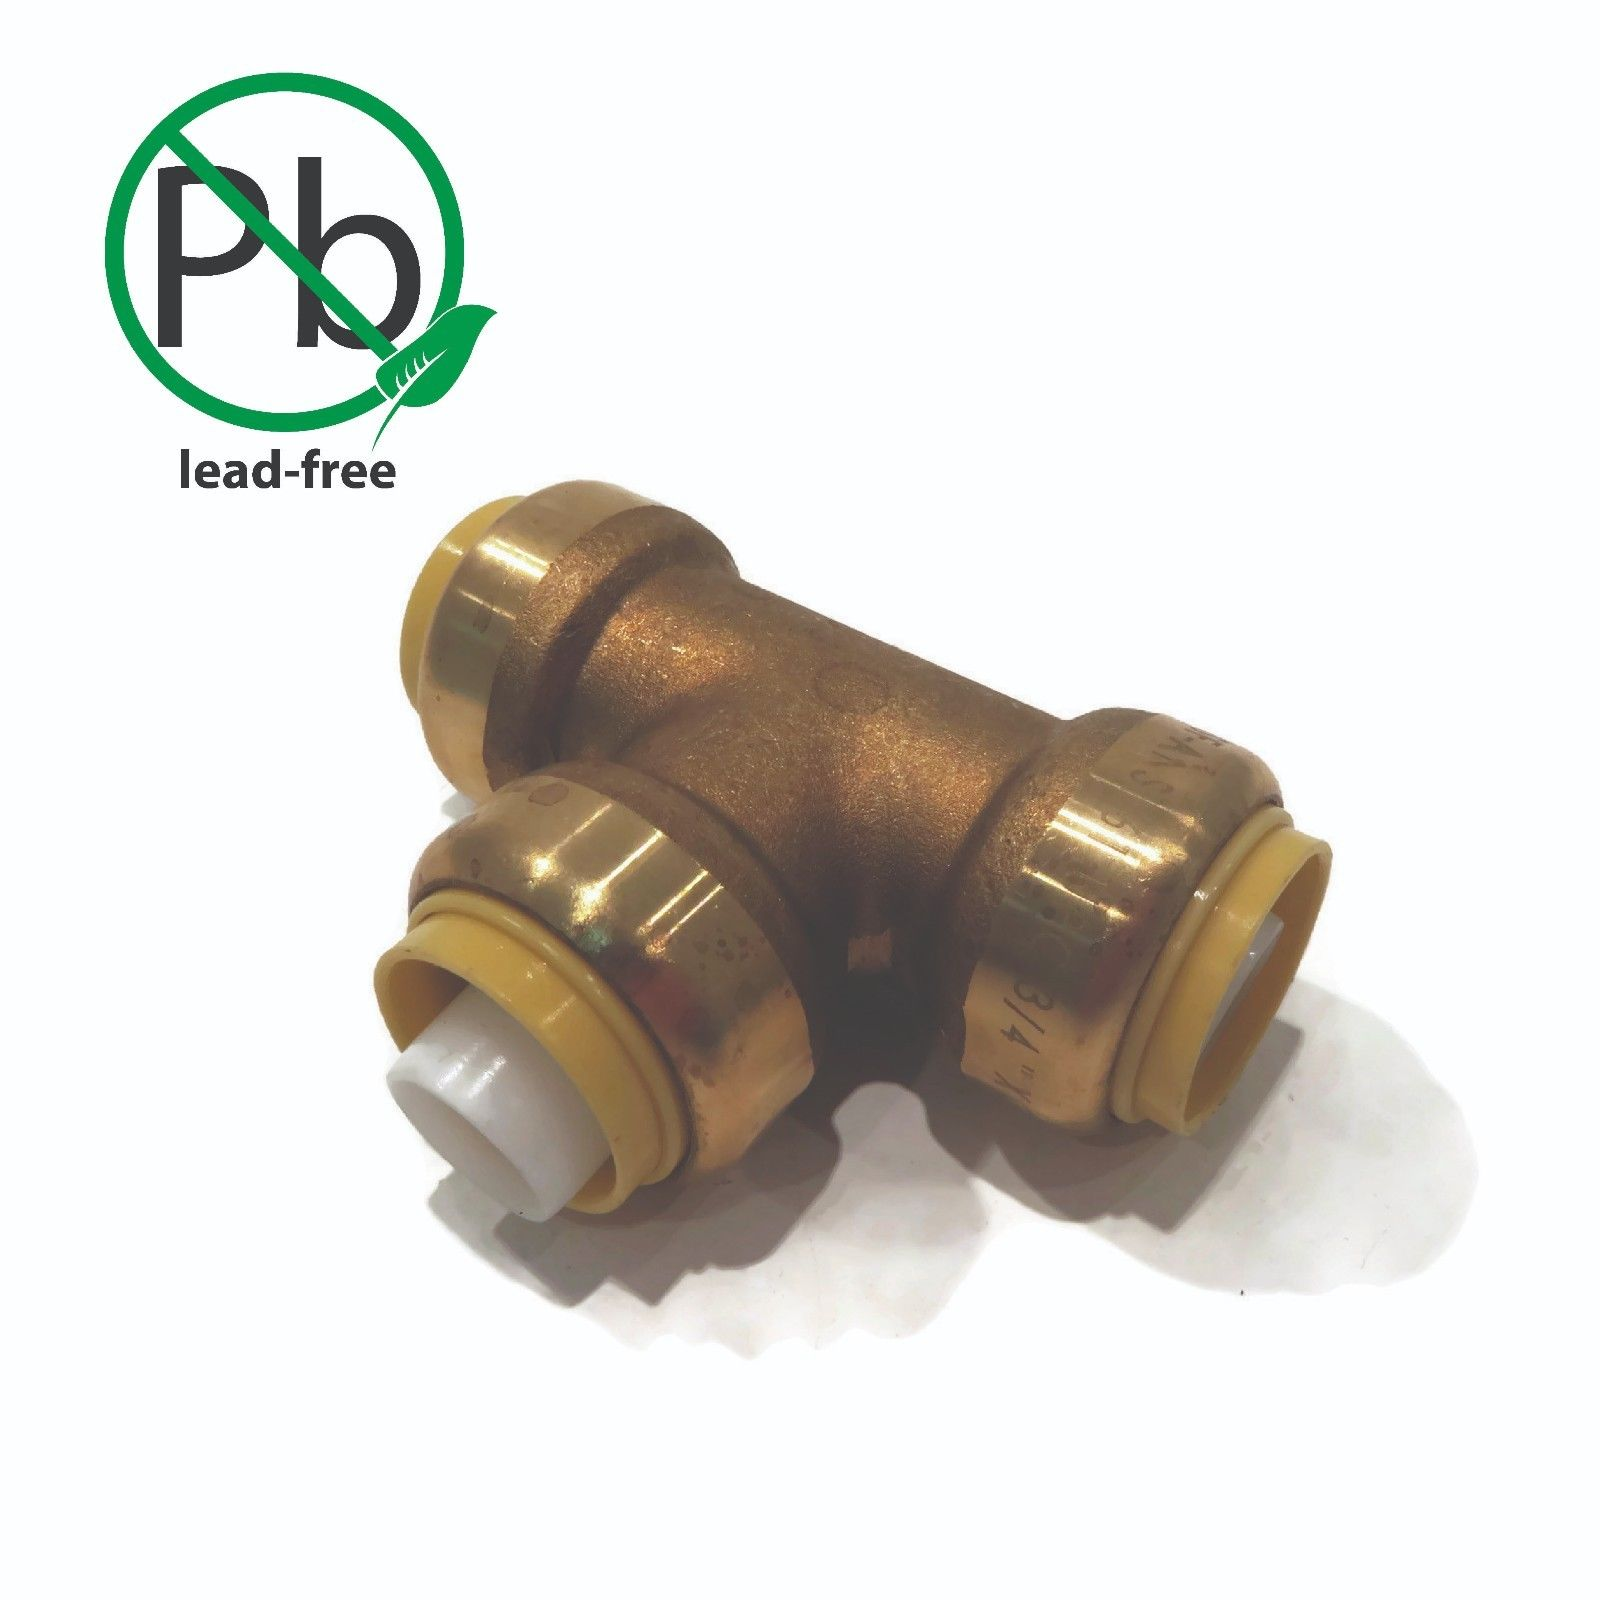 "New 3/4"" SharkBite Style Push to Connect LEAD FREE BRASS TEE Push-Fit Connector"